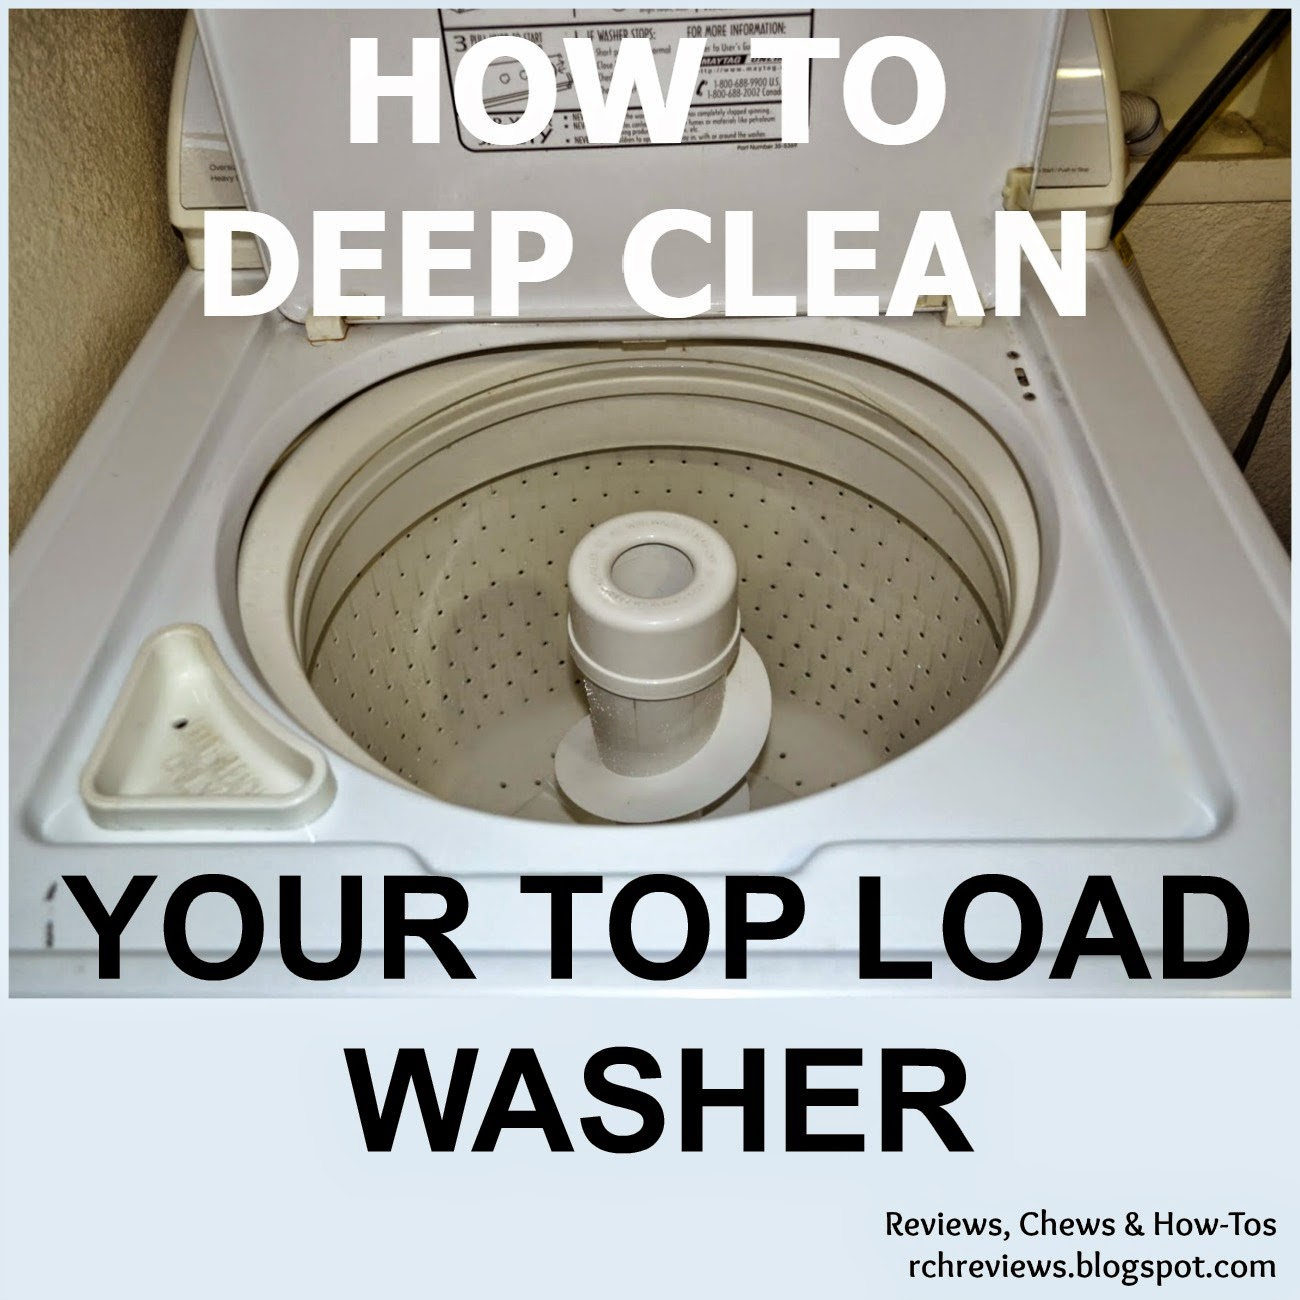 reviews chews how tos how to deep clean a top loading washing machine. Black Bedroom Furniture Sets. Home Design Ideas